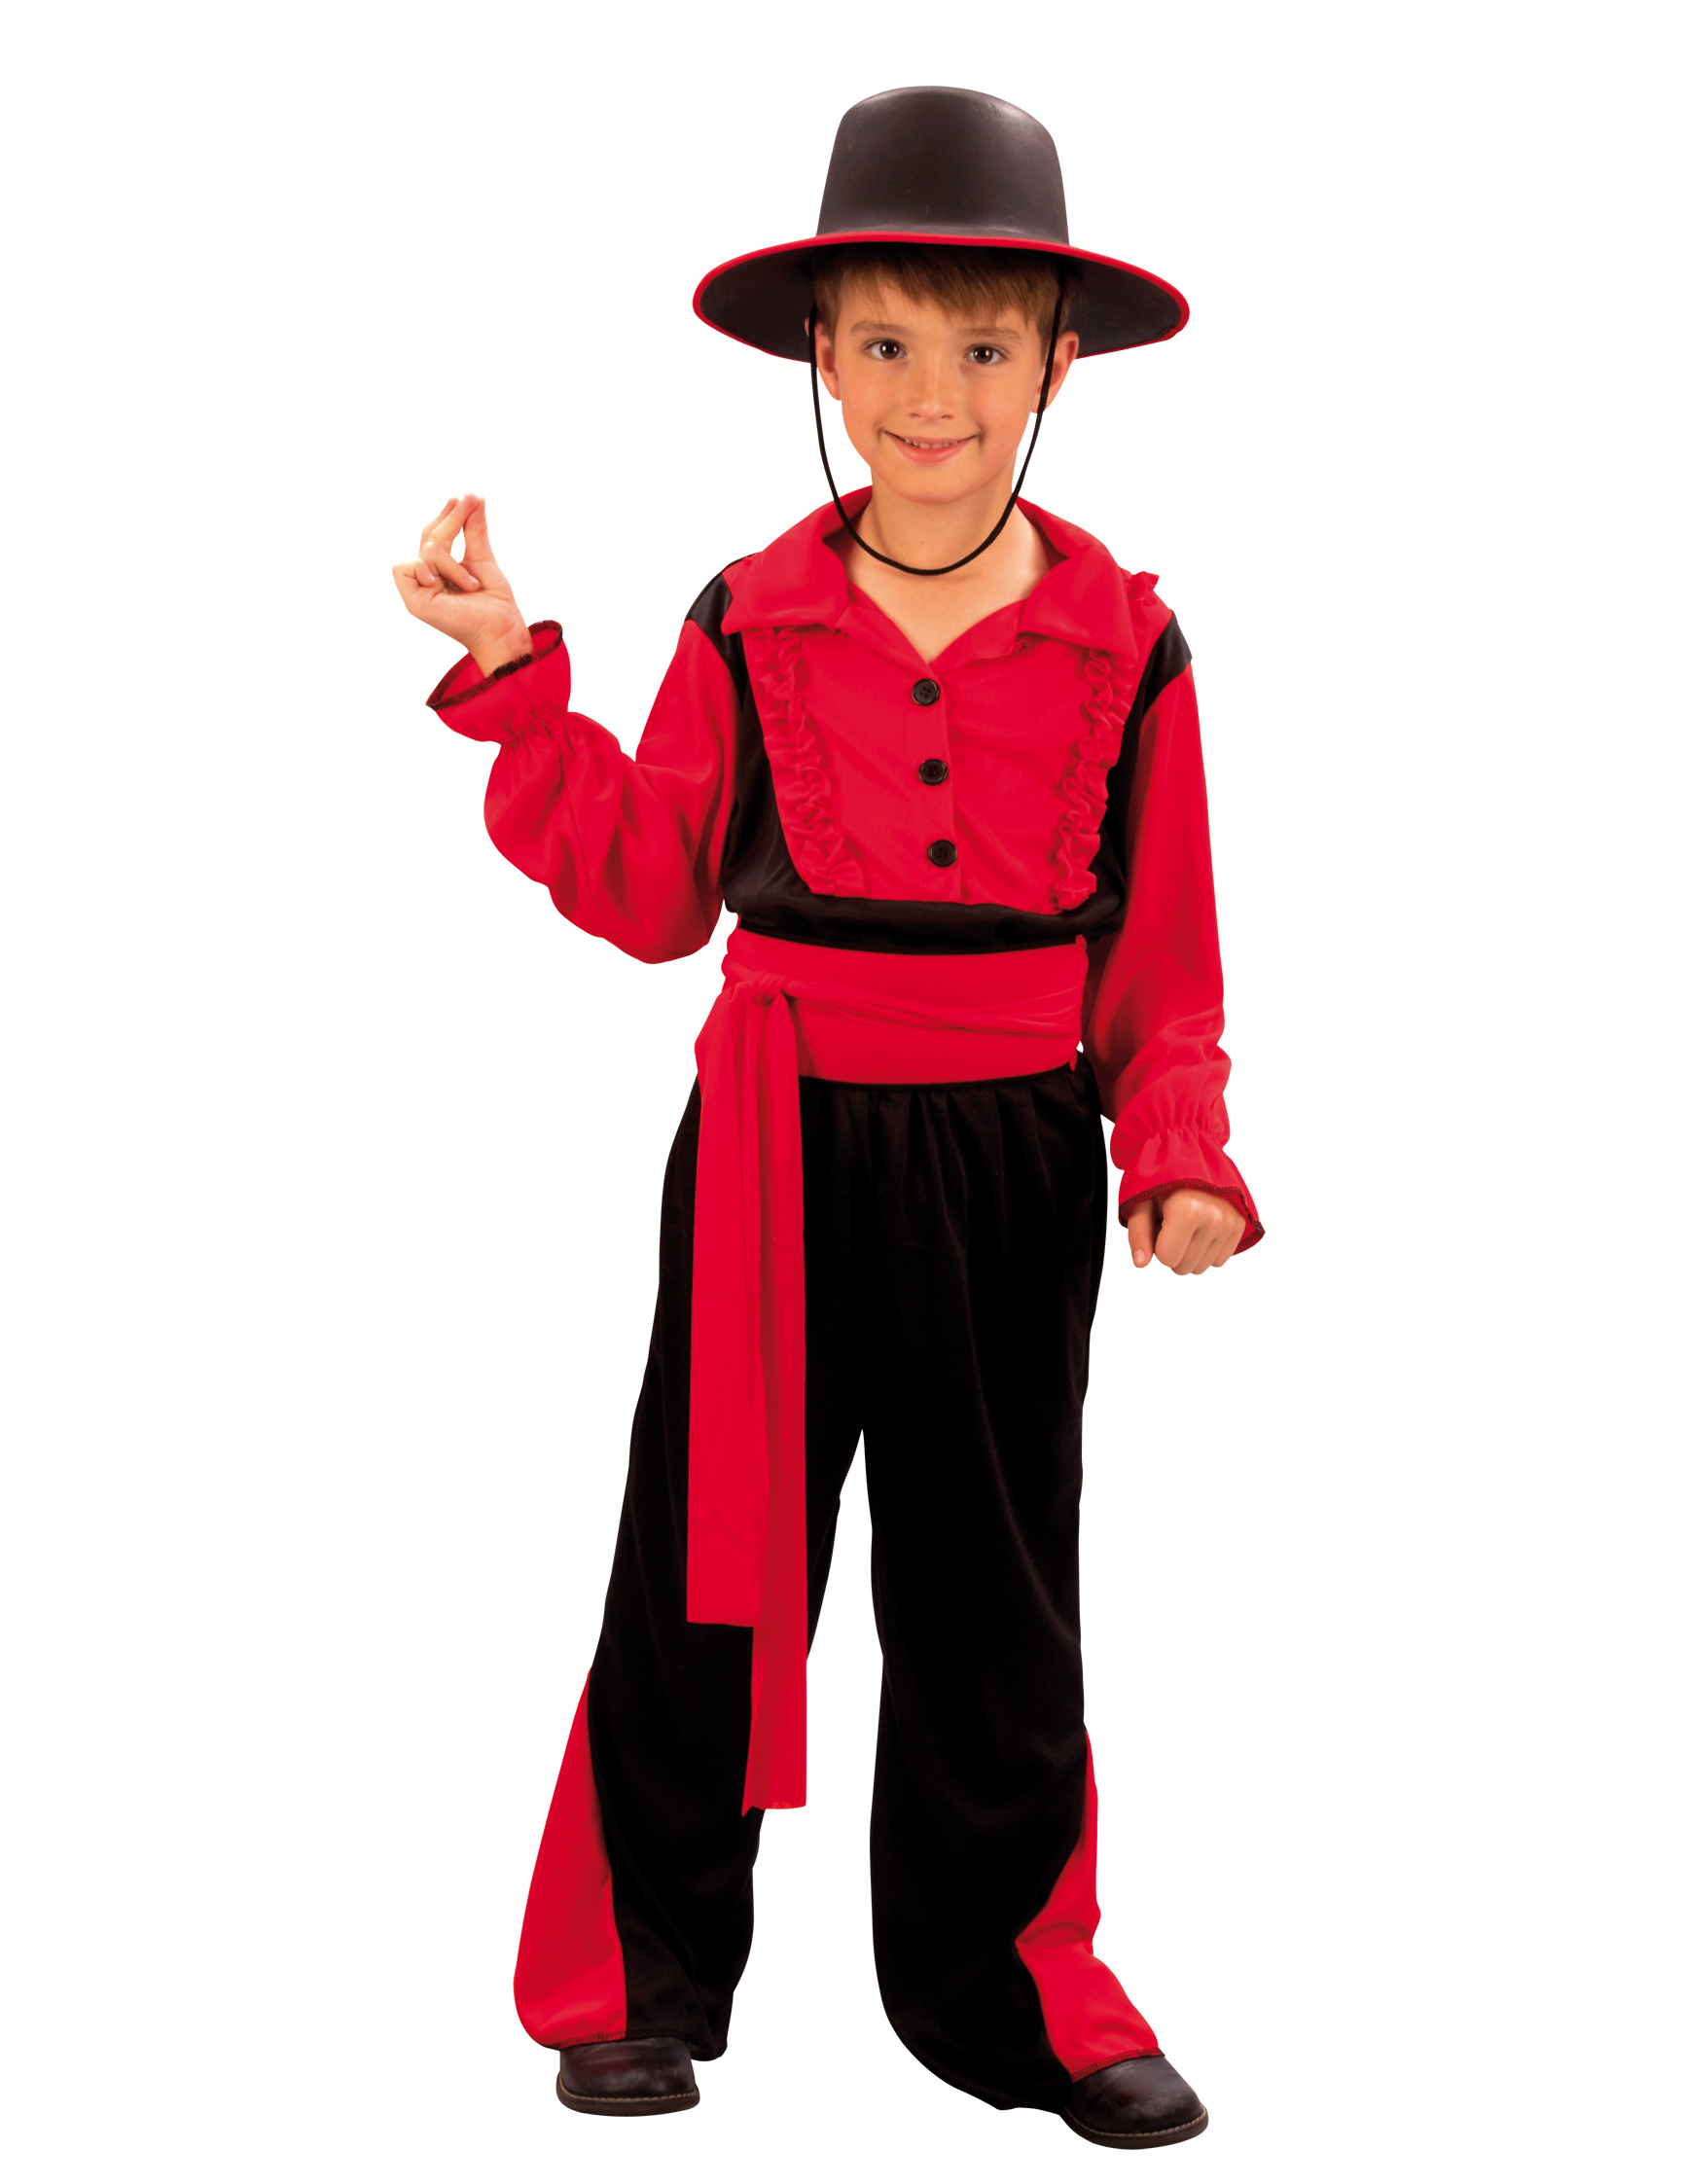 Typical Spanish costume for boys